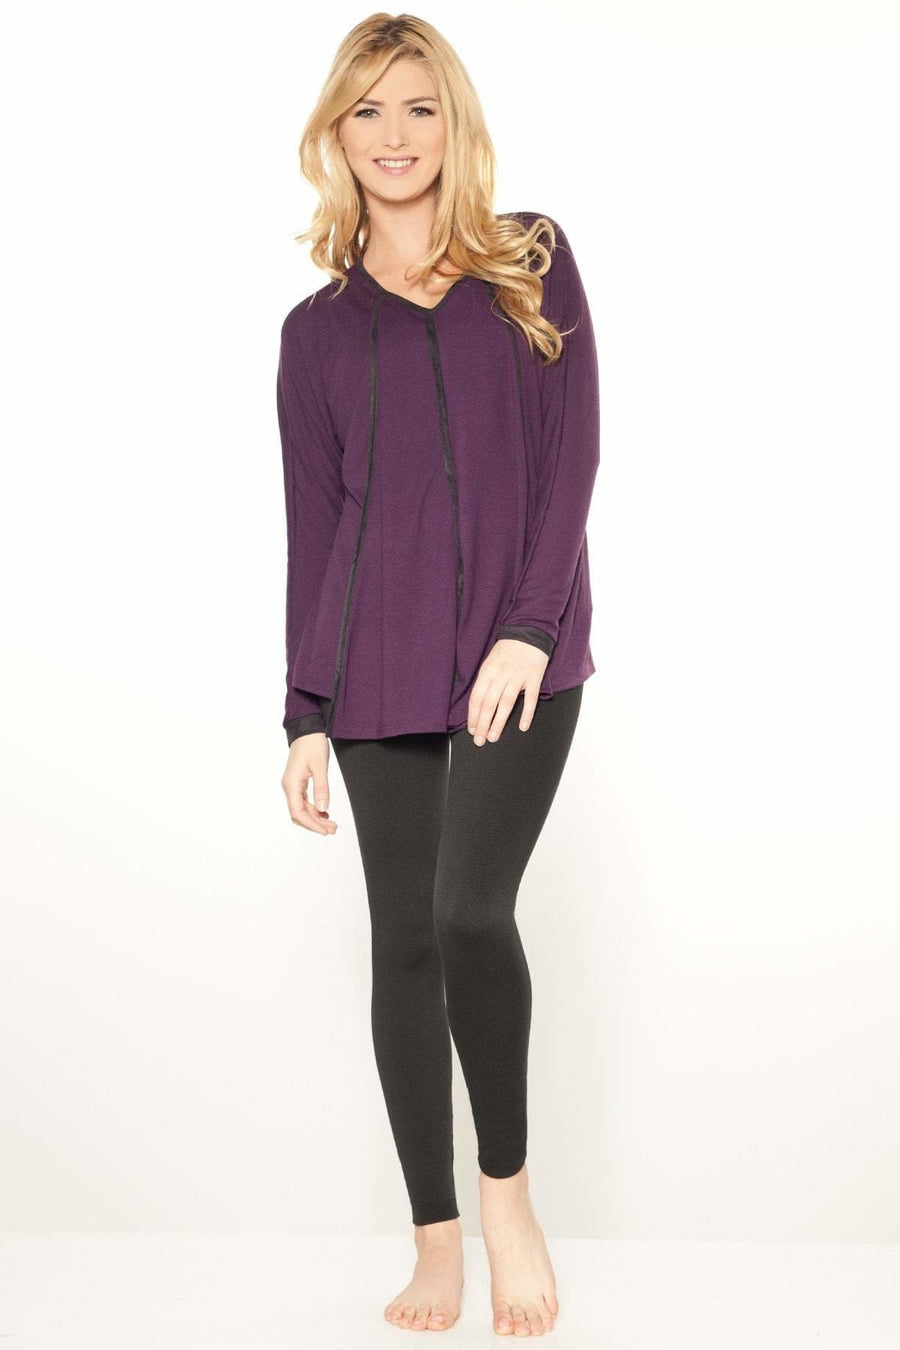 Faux Suede Trim Top- FINAL SALE - Rhonda Shear